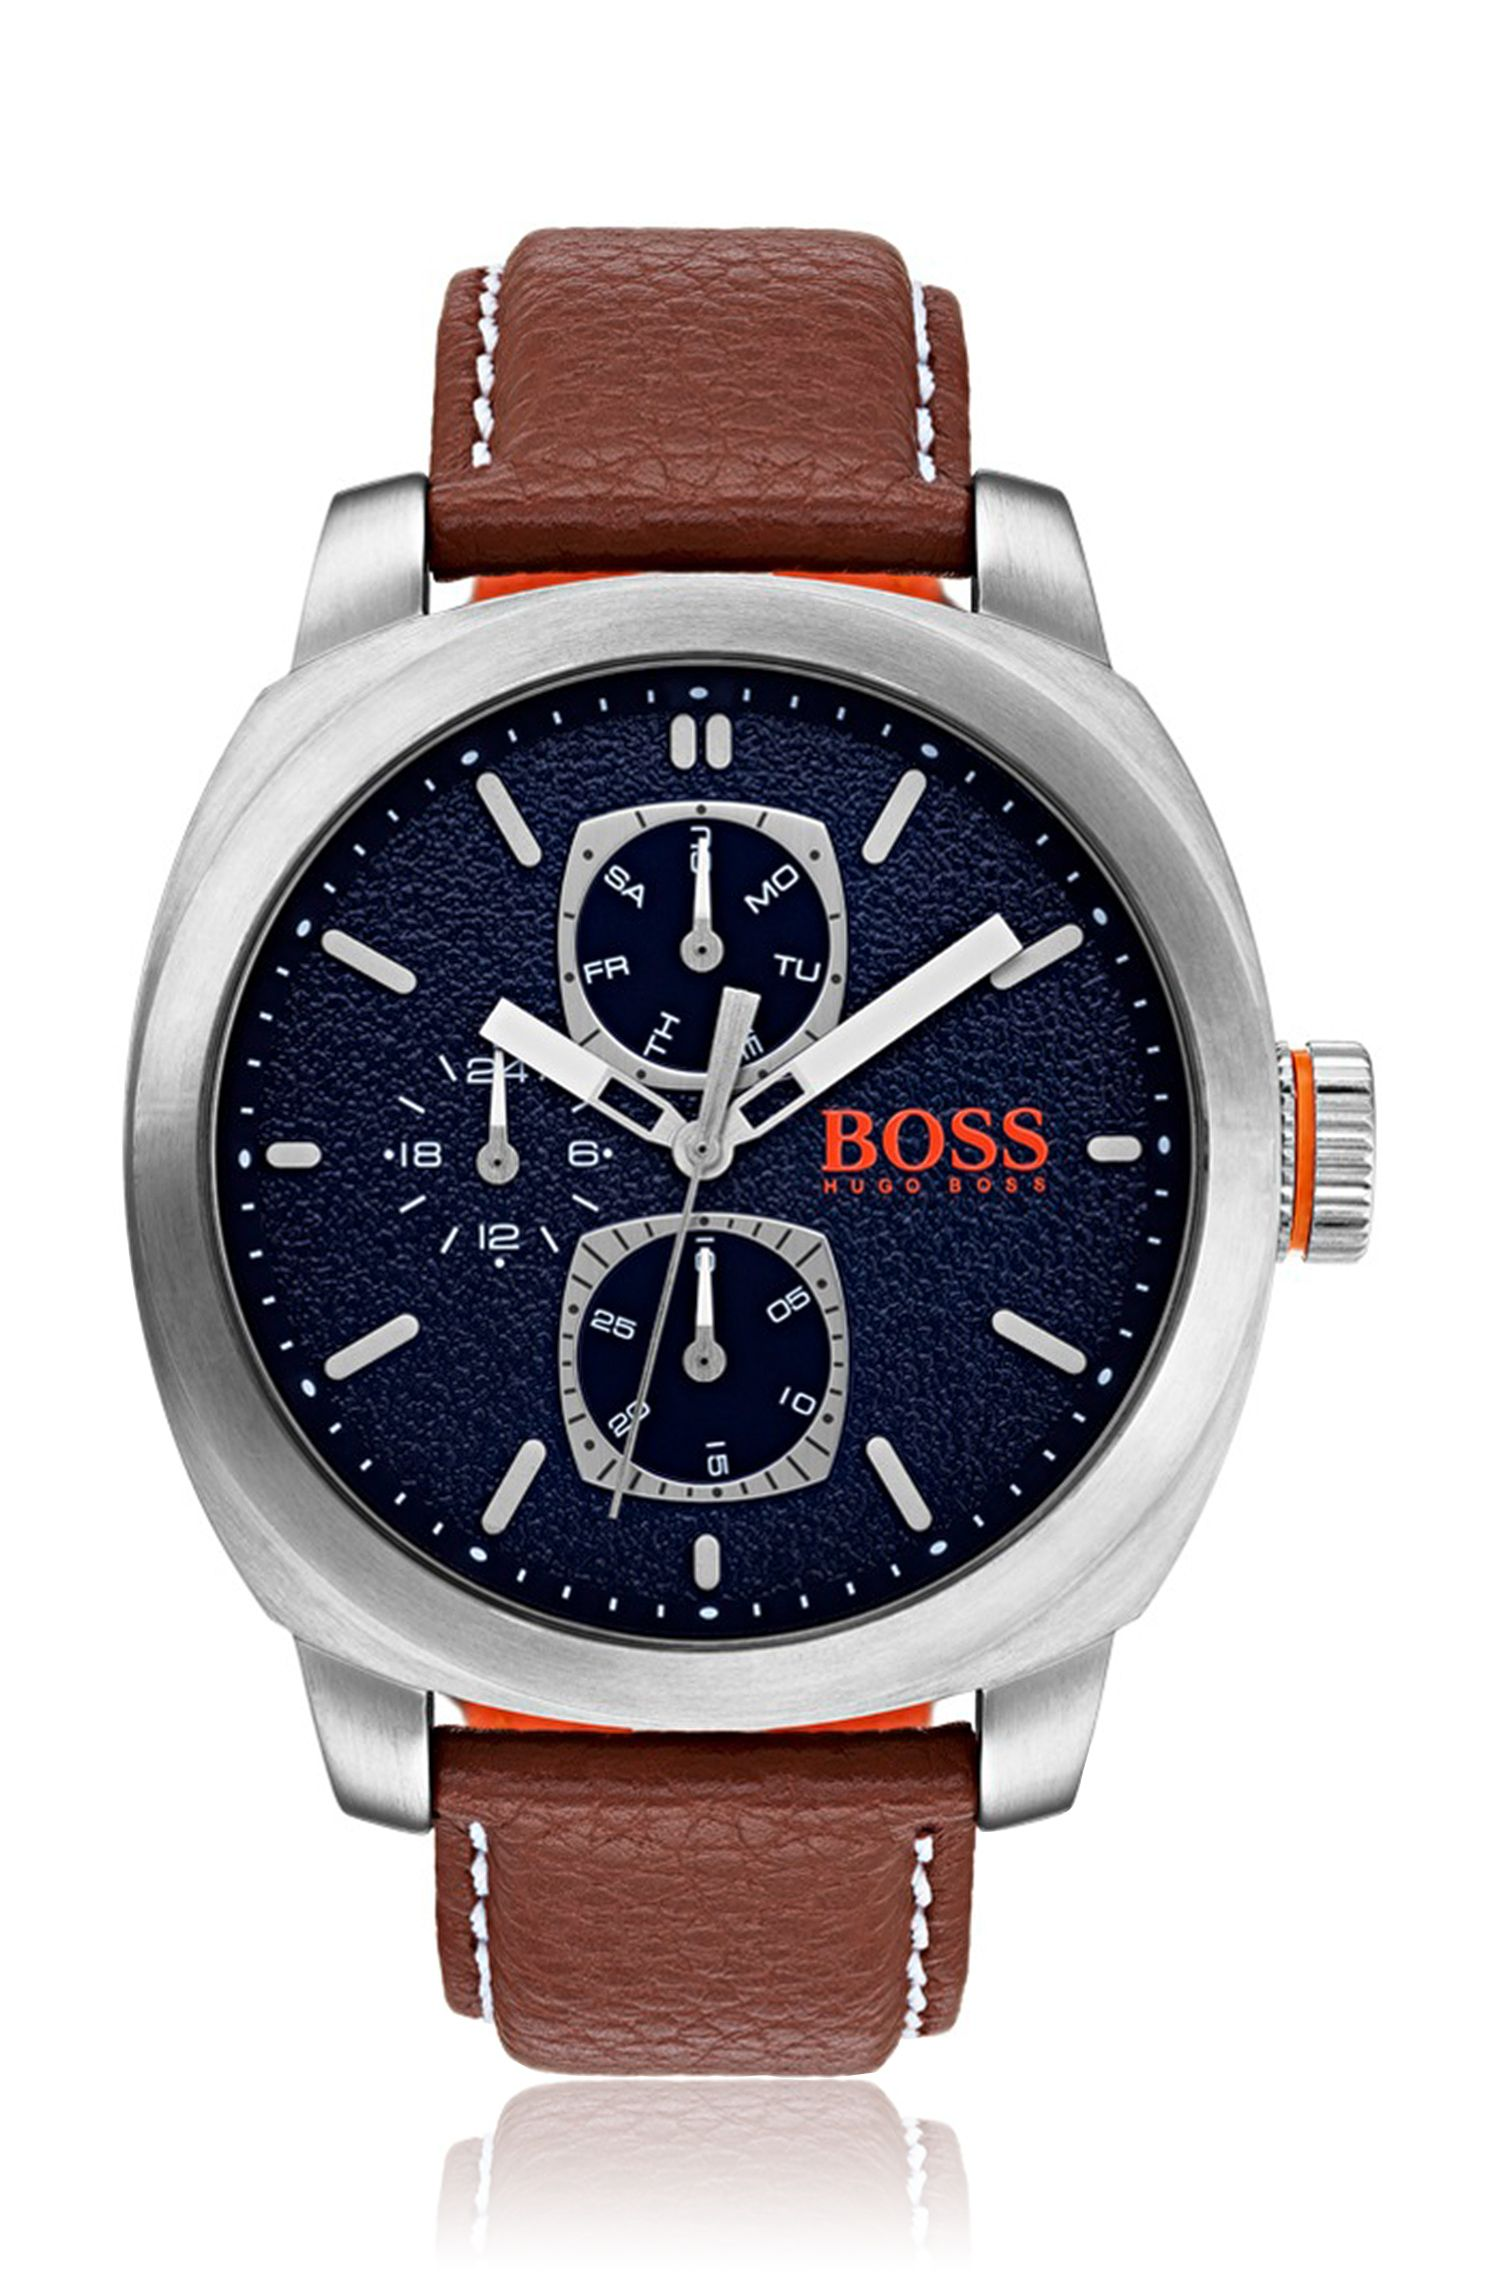 Leather-strap watch with textured blue dial